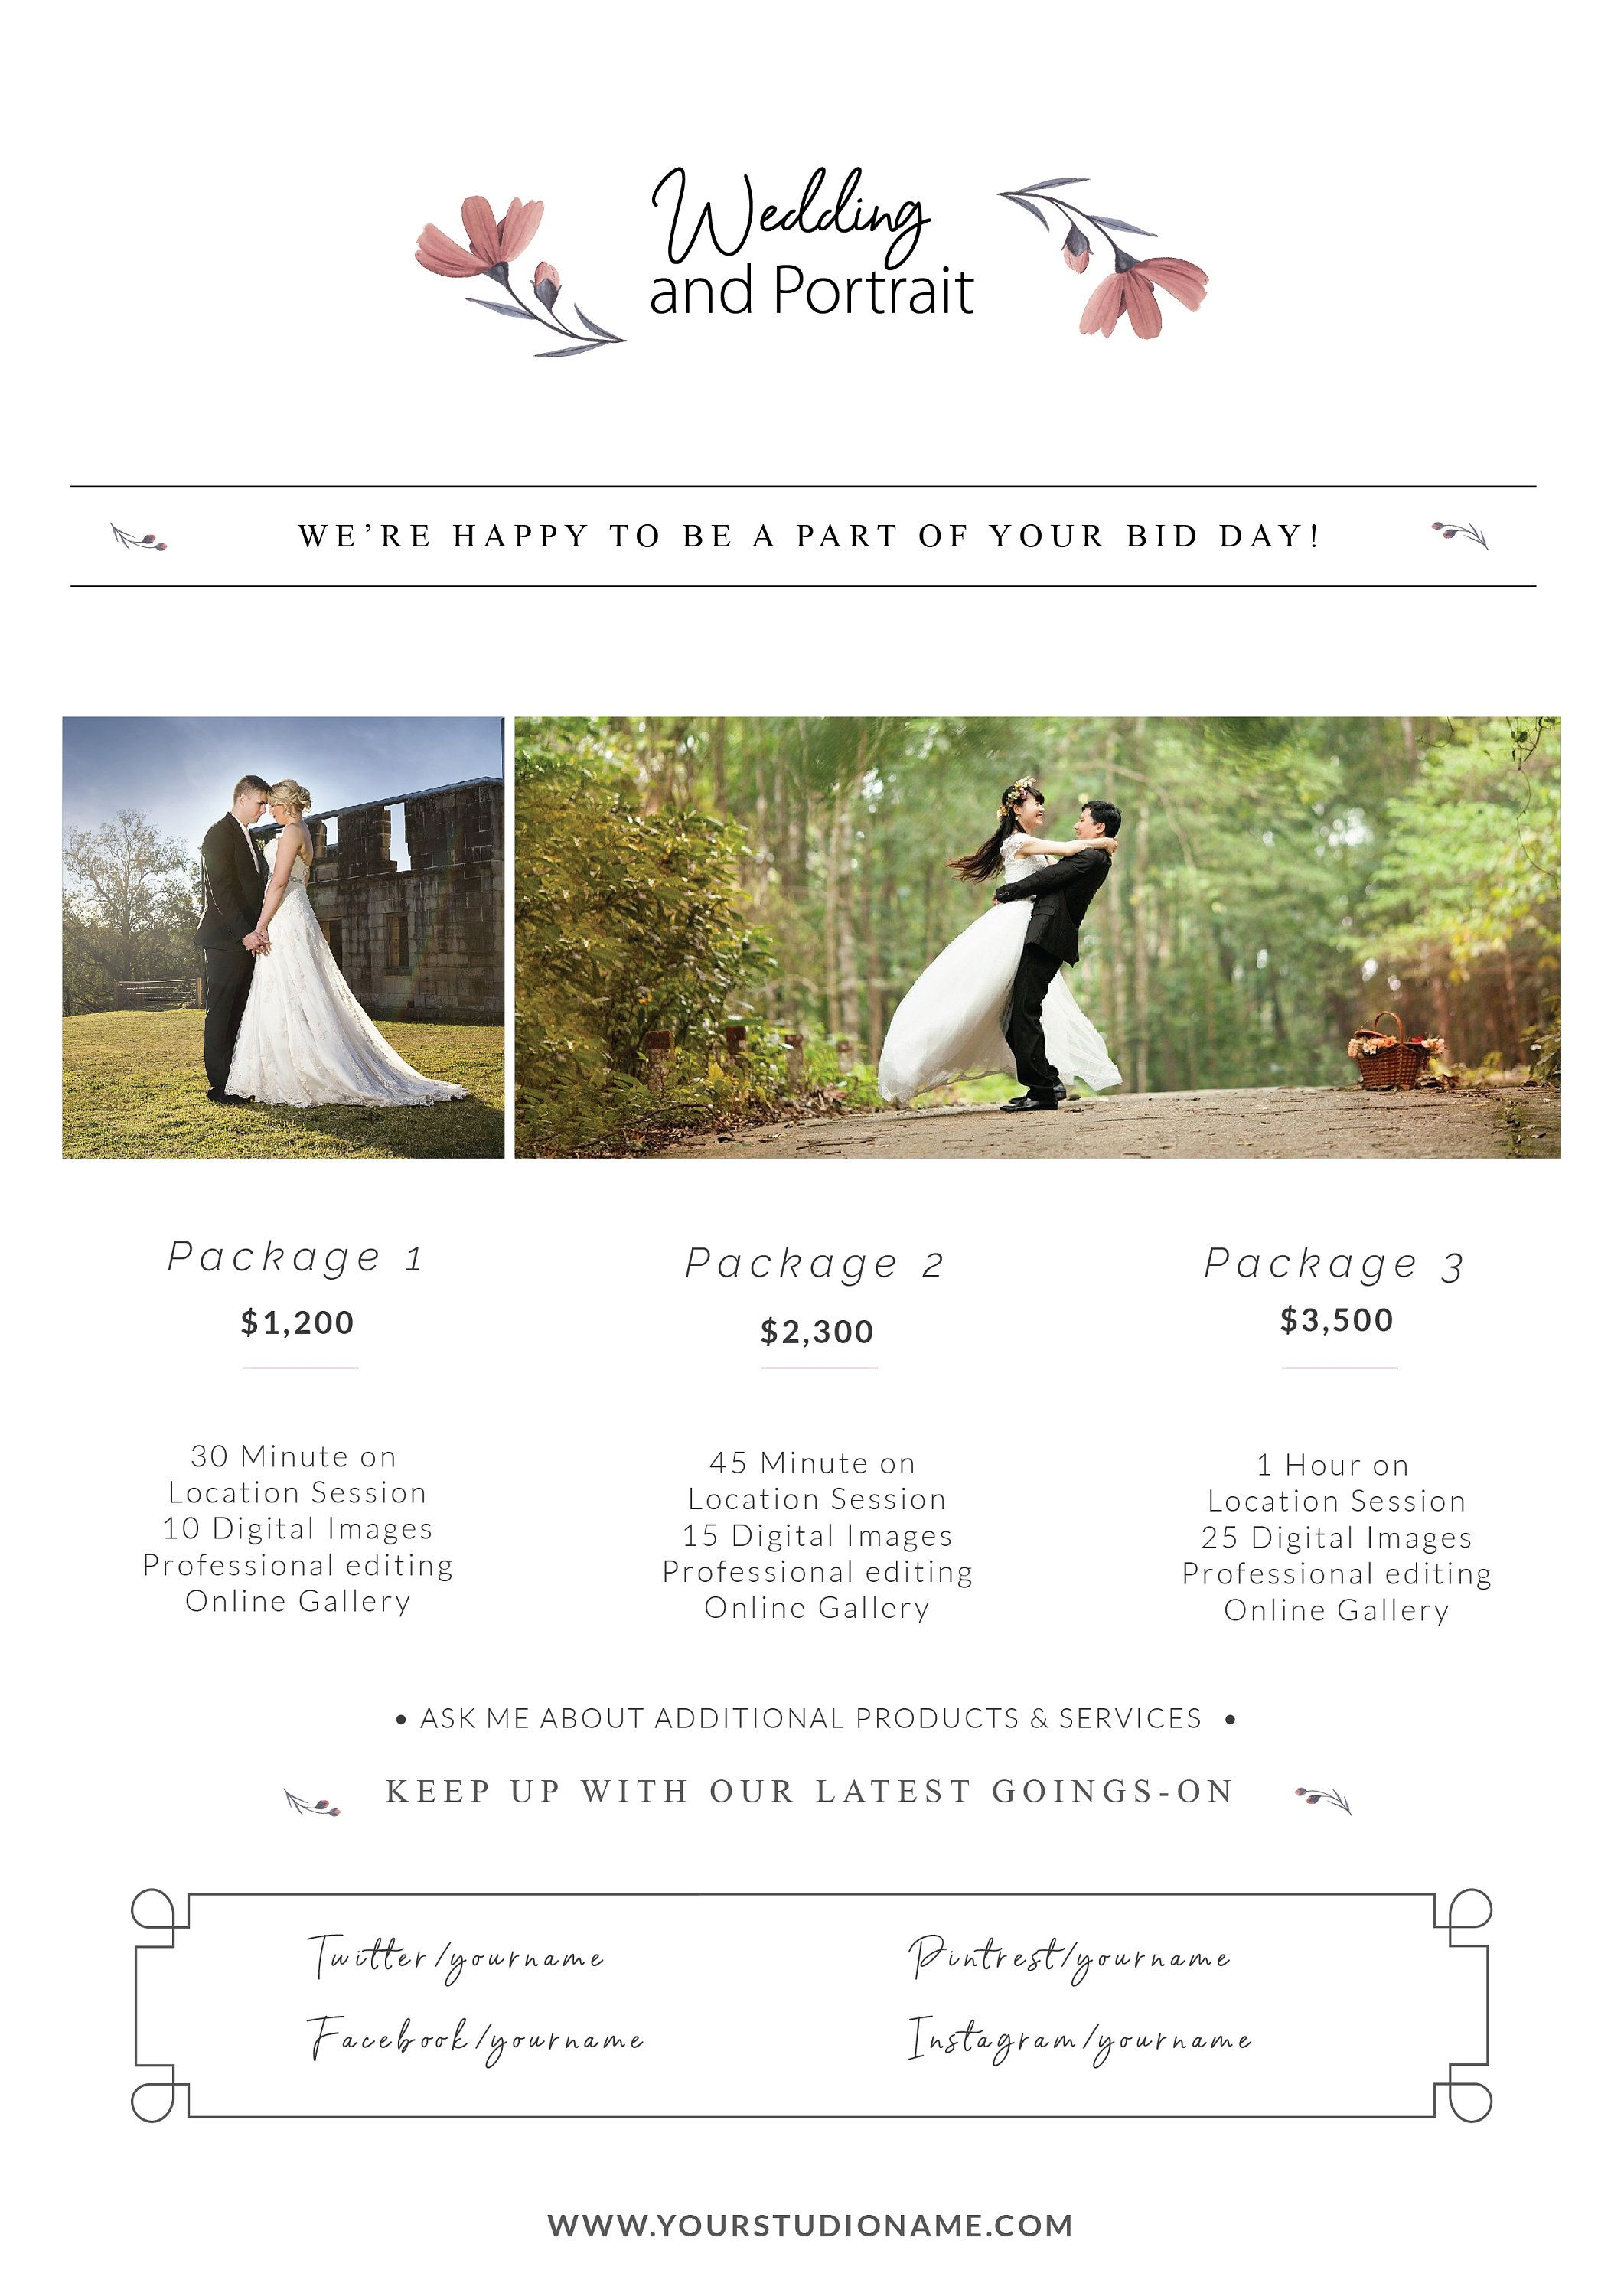 Wedding Photography Pricing Template, Price Guide List for